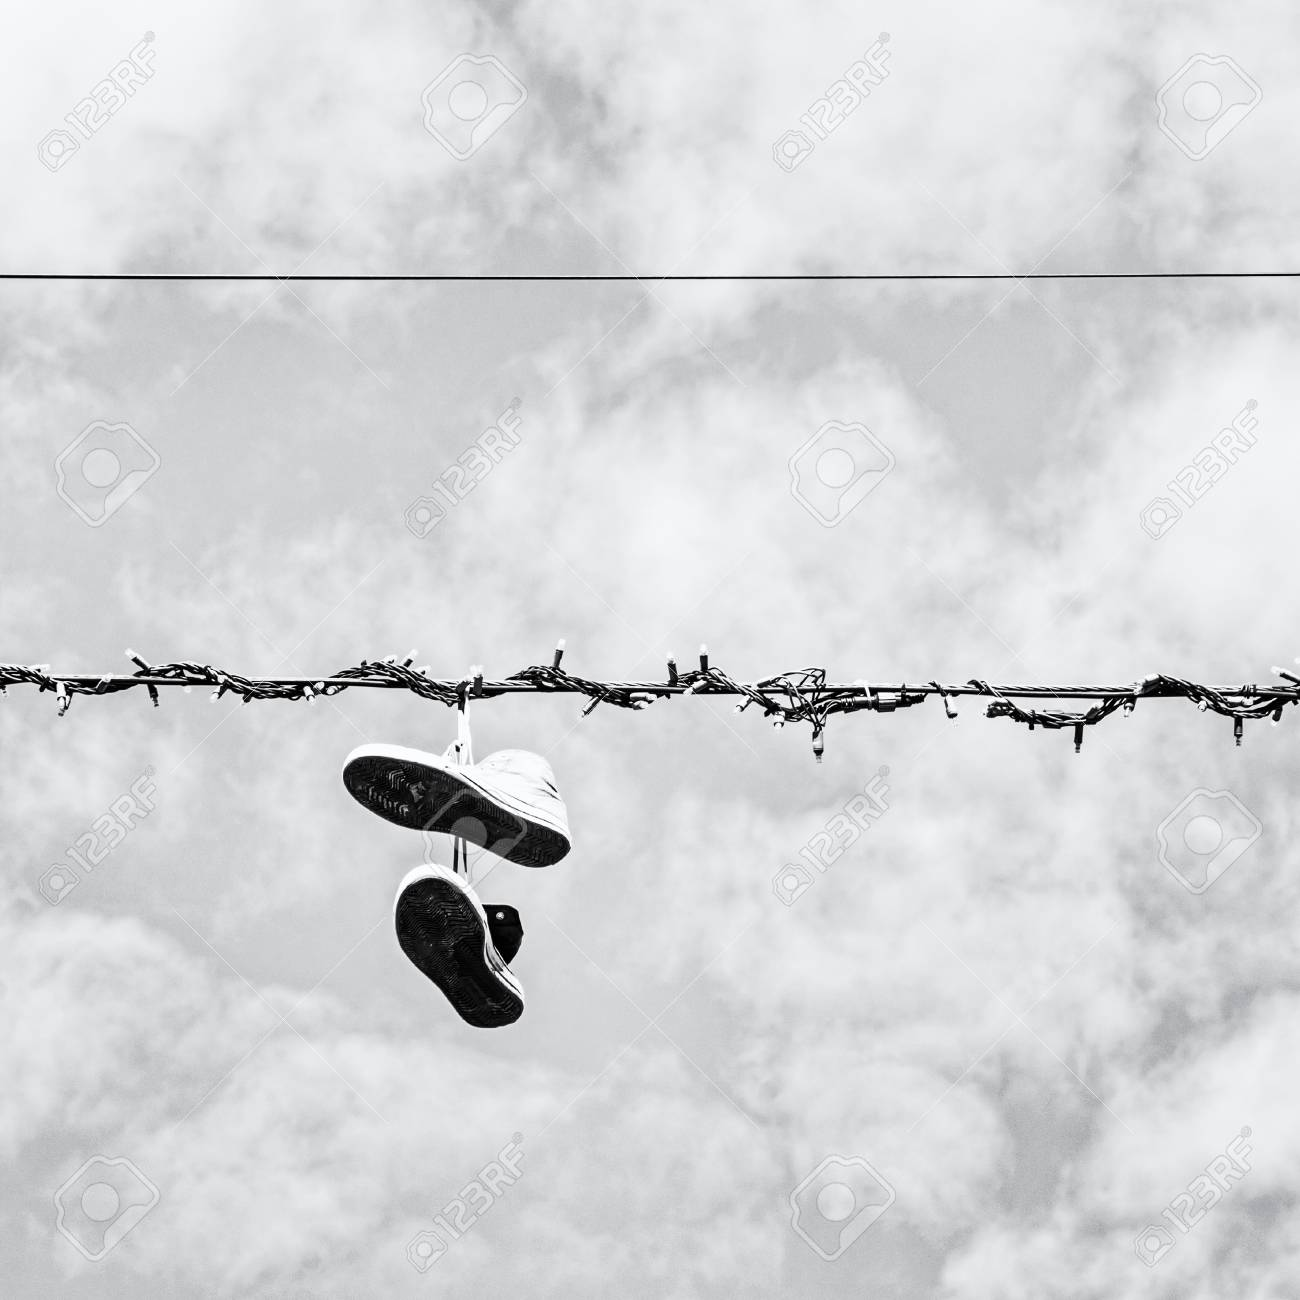 Sneakers hanging on the power line black and white photo bad joke stock